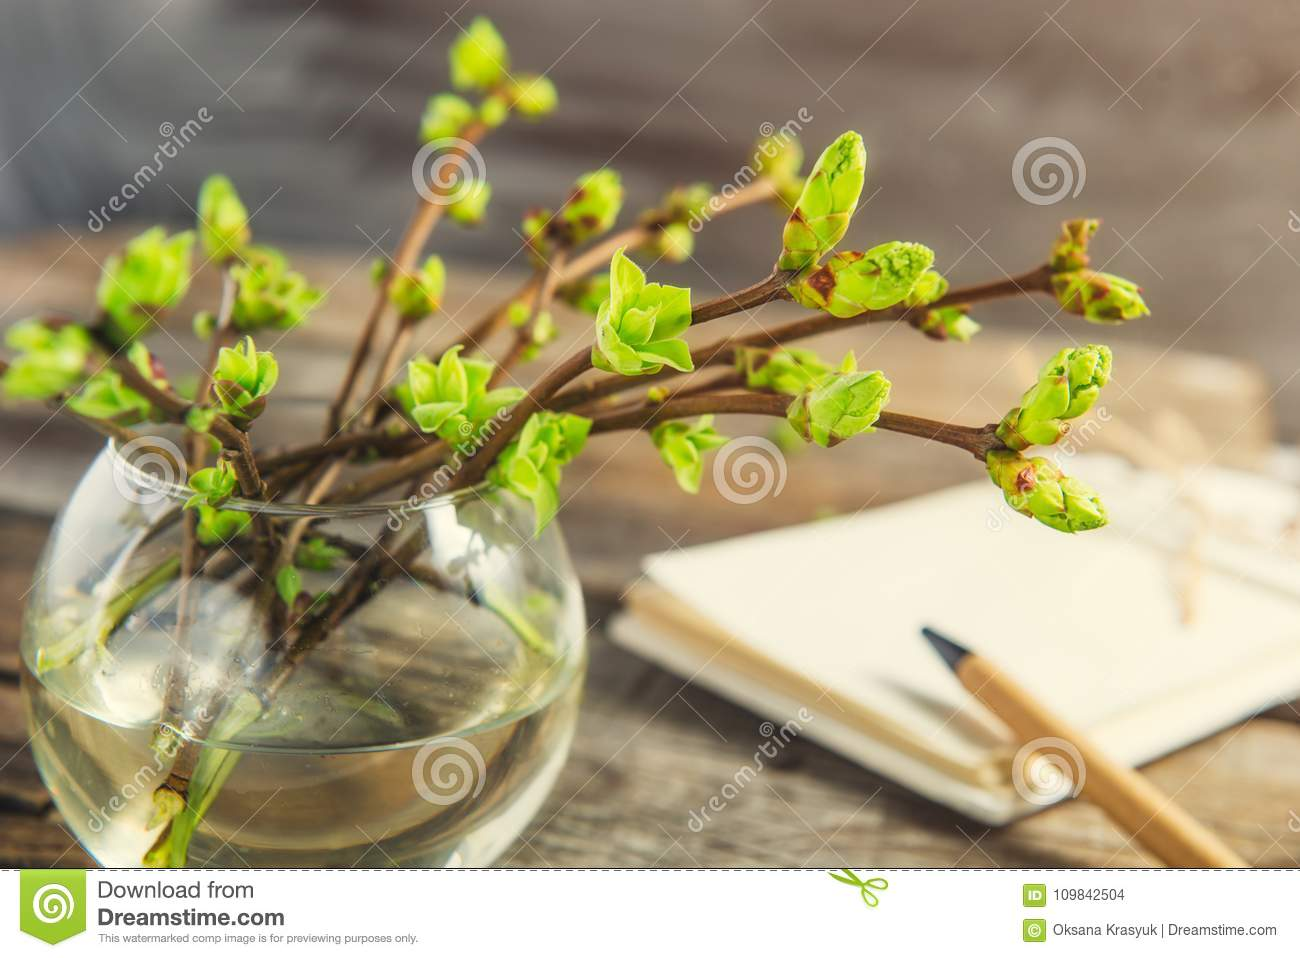 Vase with branches with young shoots of greenery and blurred notebook on the rustic wooden table. Spring awaking concept. Vintage